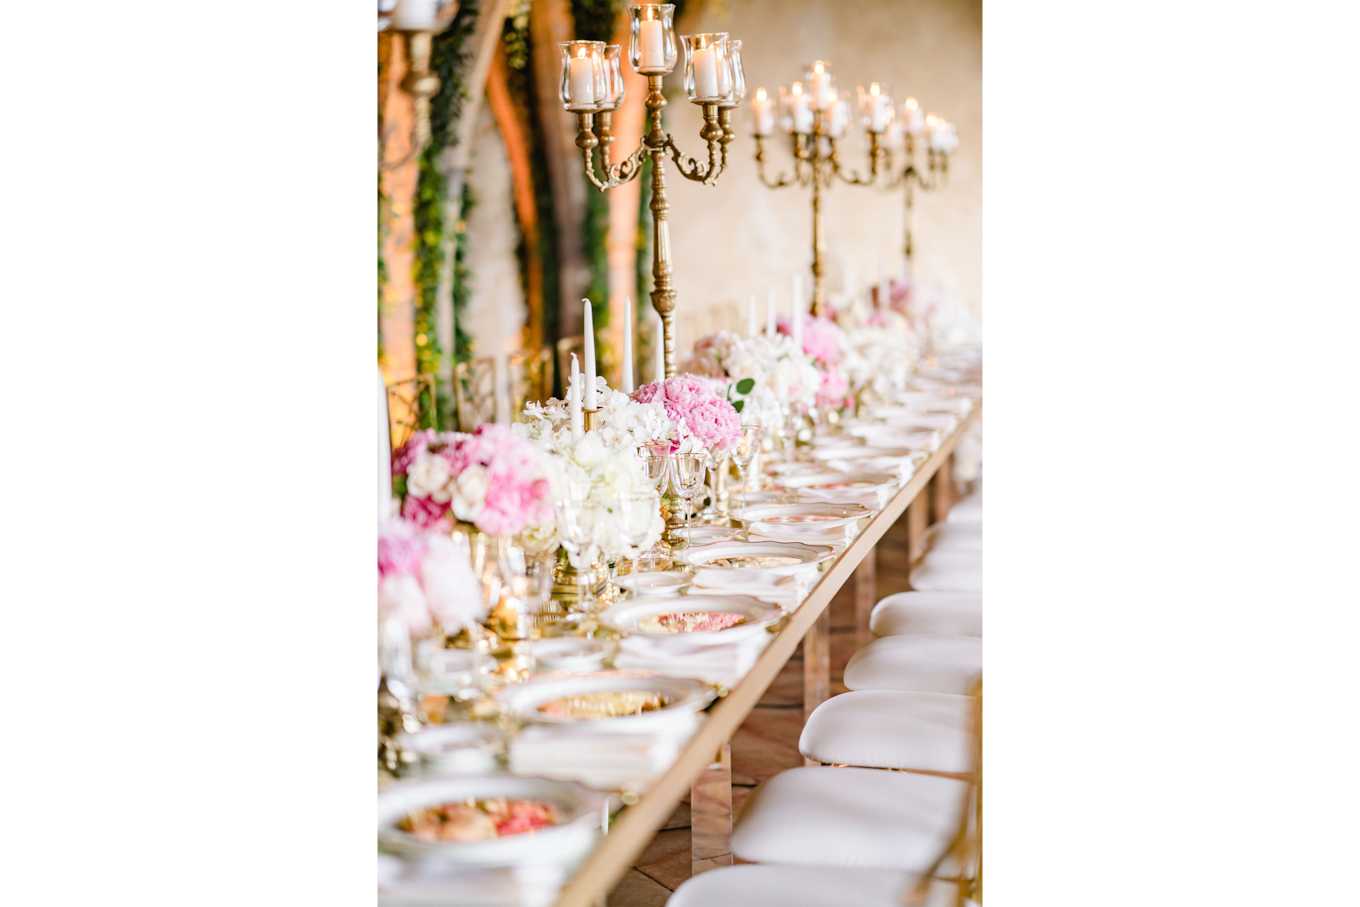 sandra aberg sony alpha 7r3 view of the richly decorated wedding table with a focus on candles